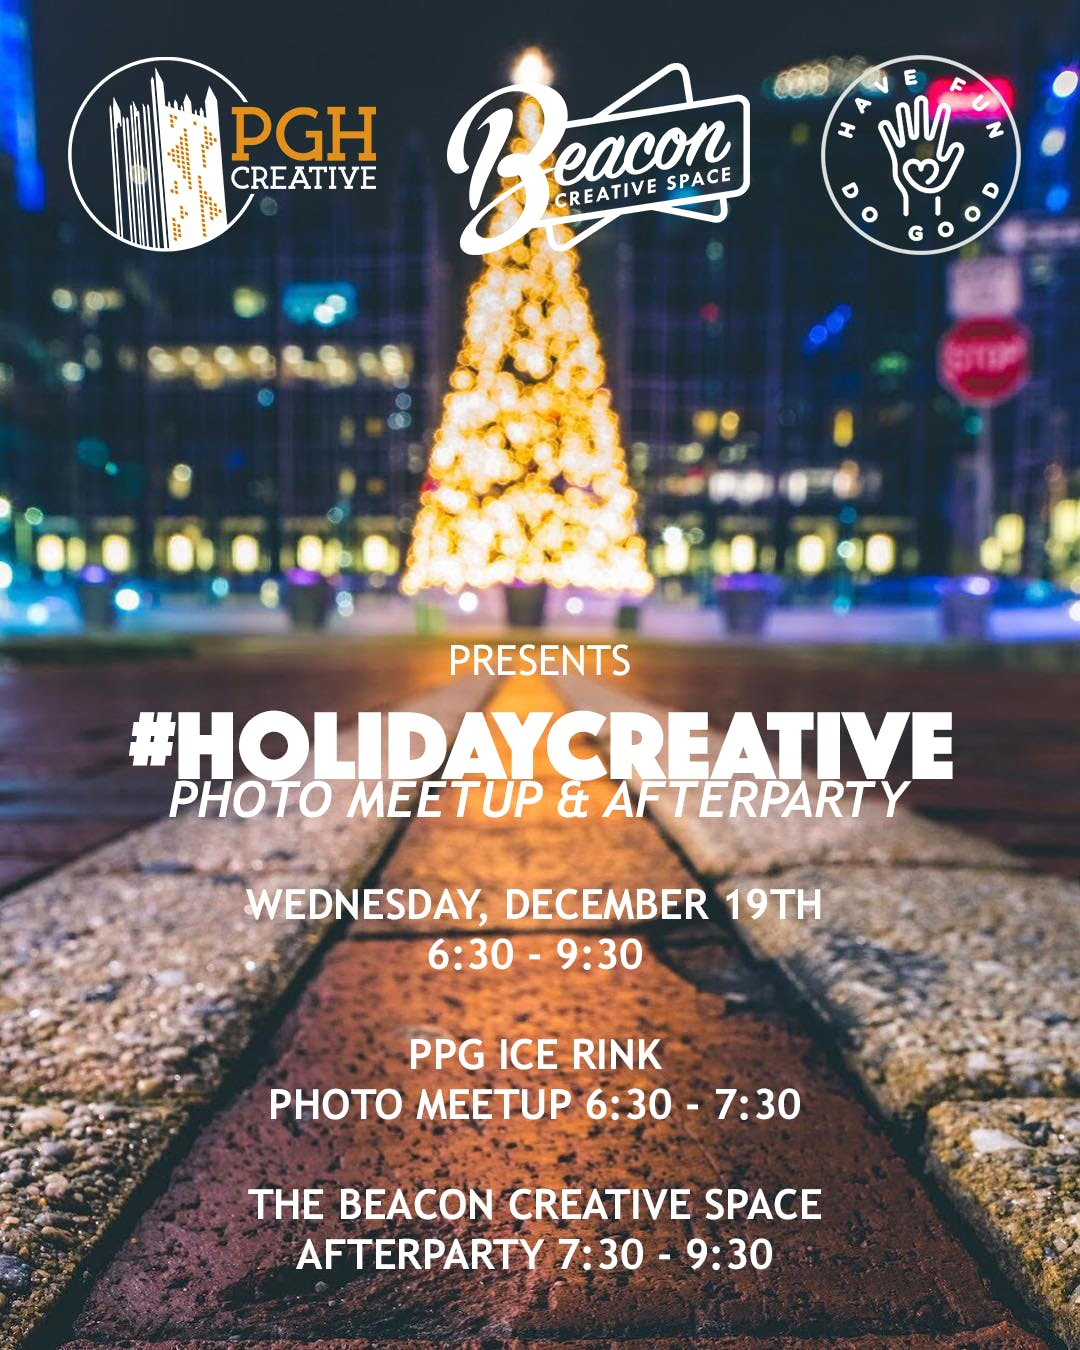 #HolidayCreative Photo Meetup & Afterparty